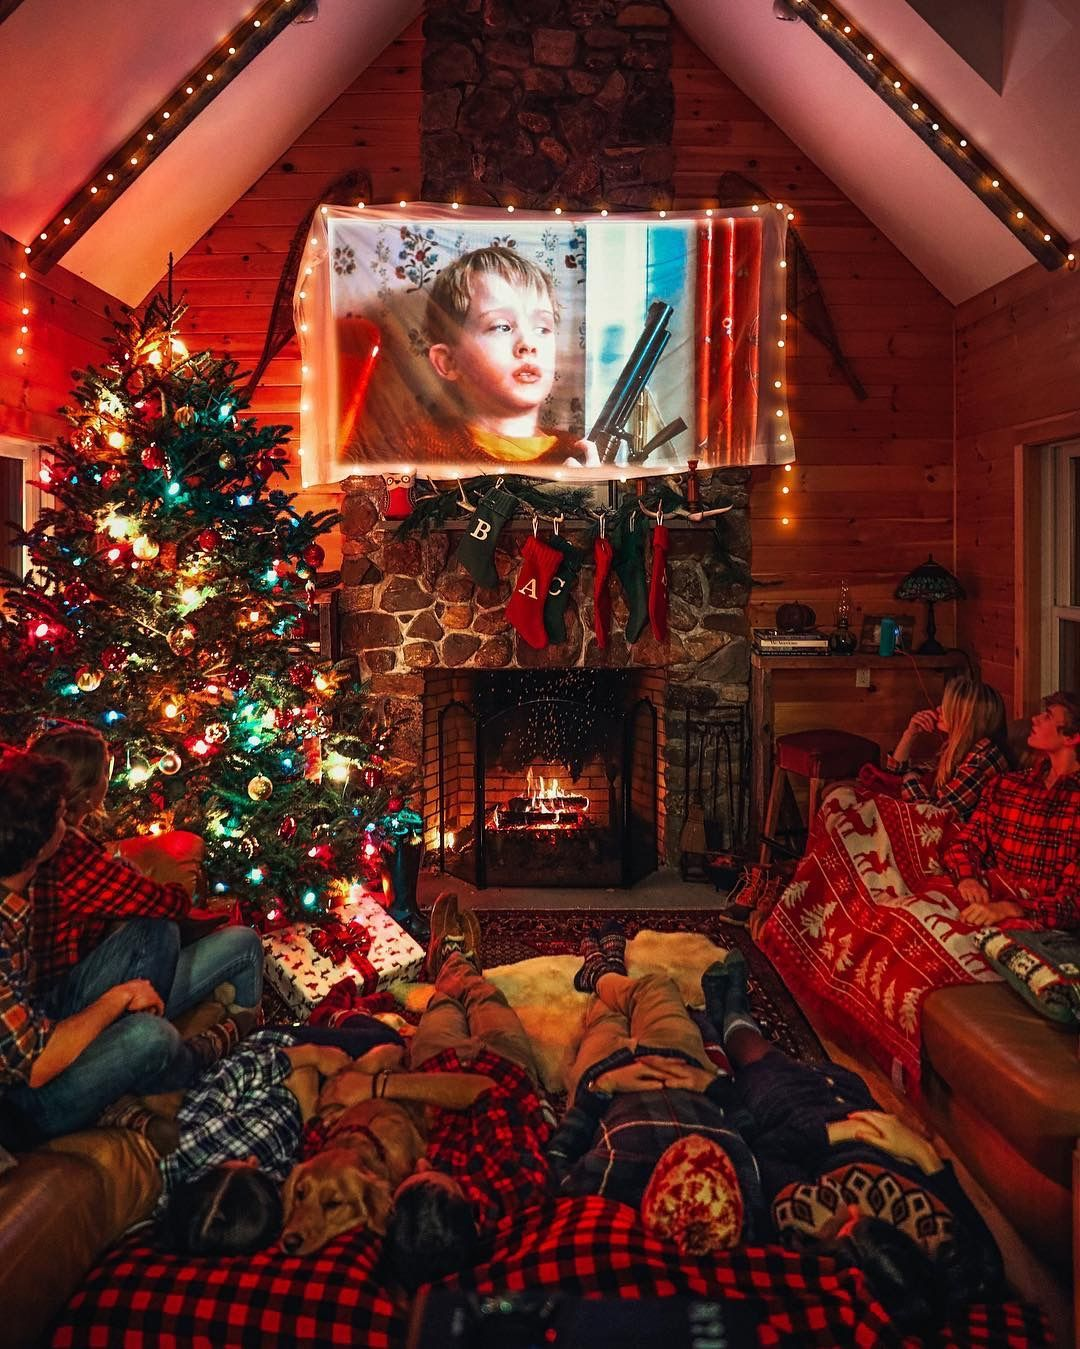 Count The Number Of People Cuddled Up Watching The Movie Cozy Christmas Christmas Wallpaper Christmas Lights